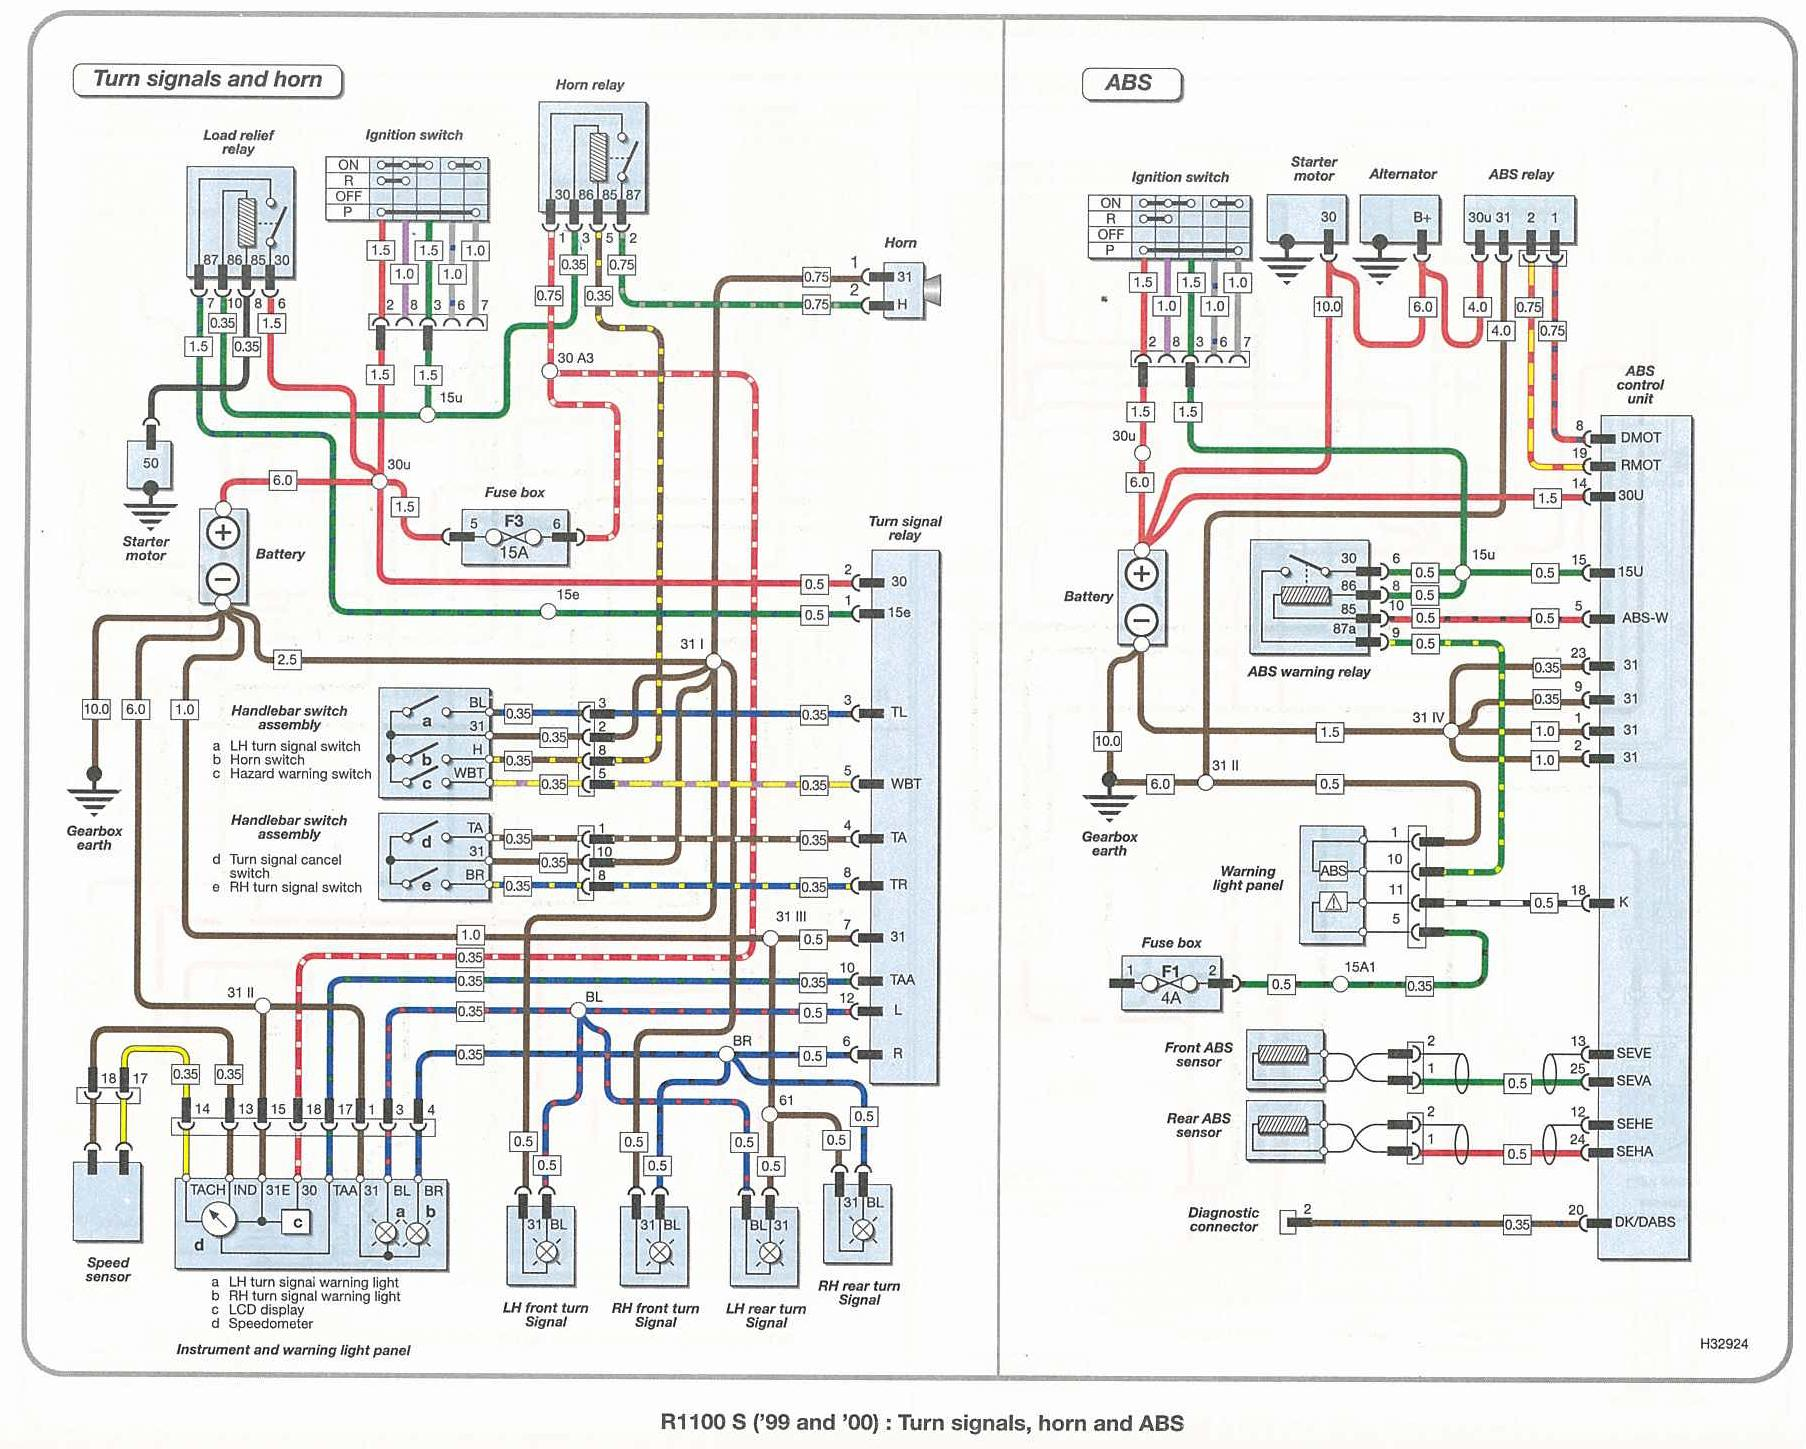 wiring03 bmw r1100s wiring diagrams honda vtr 250 wiring diagram at suagrazia.org